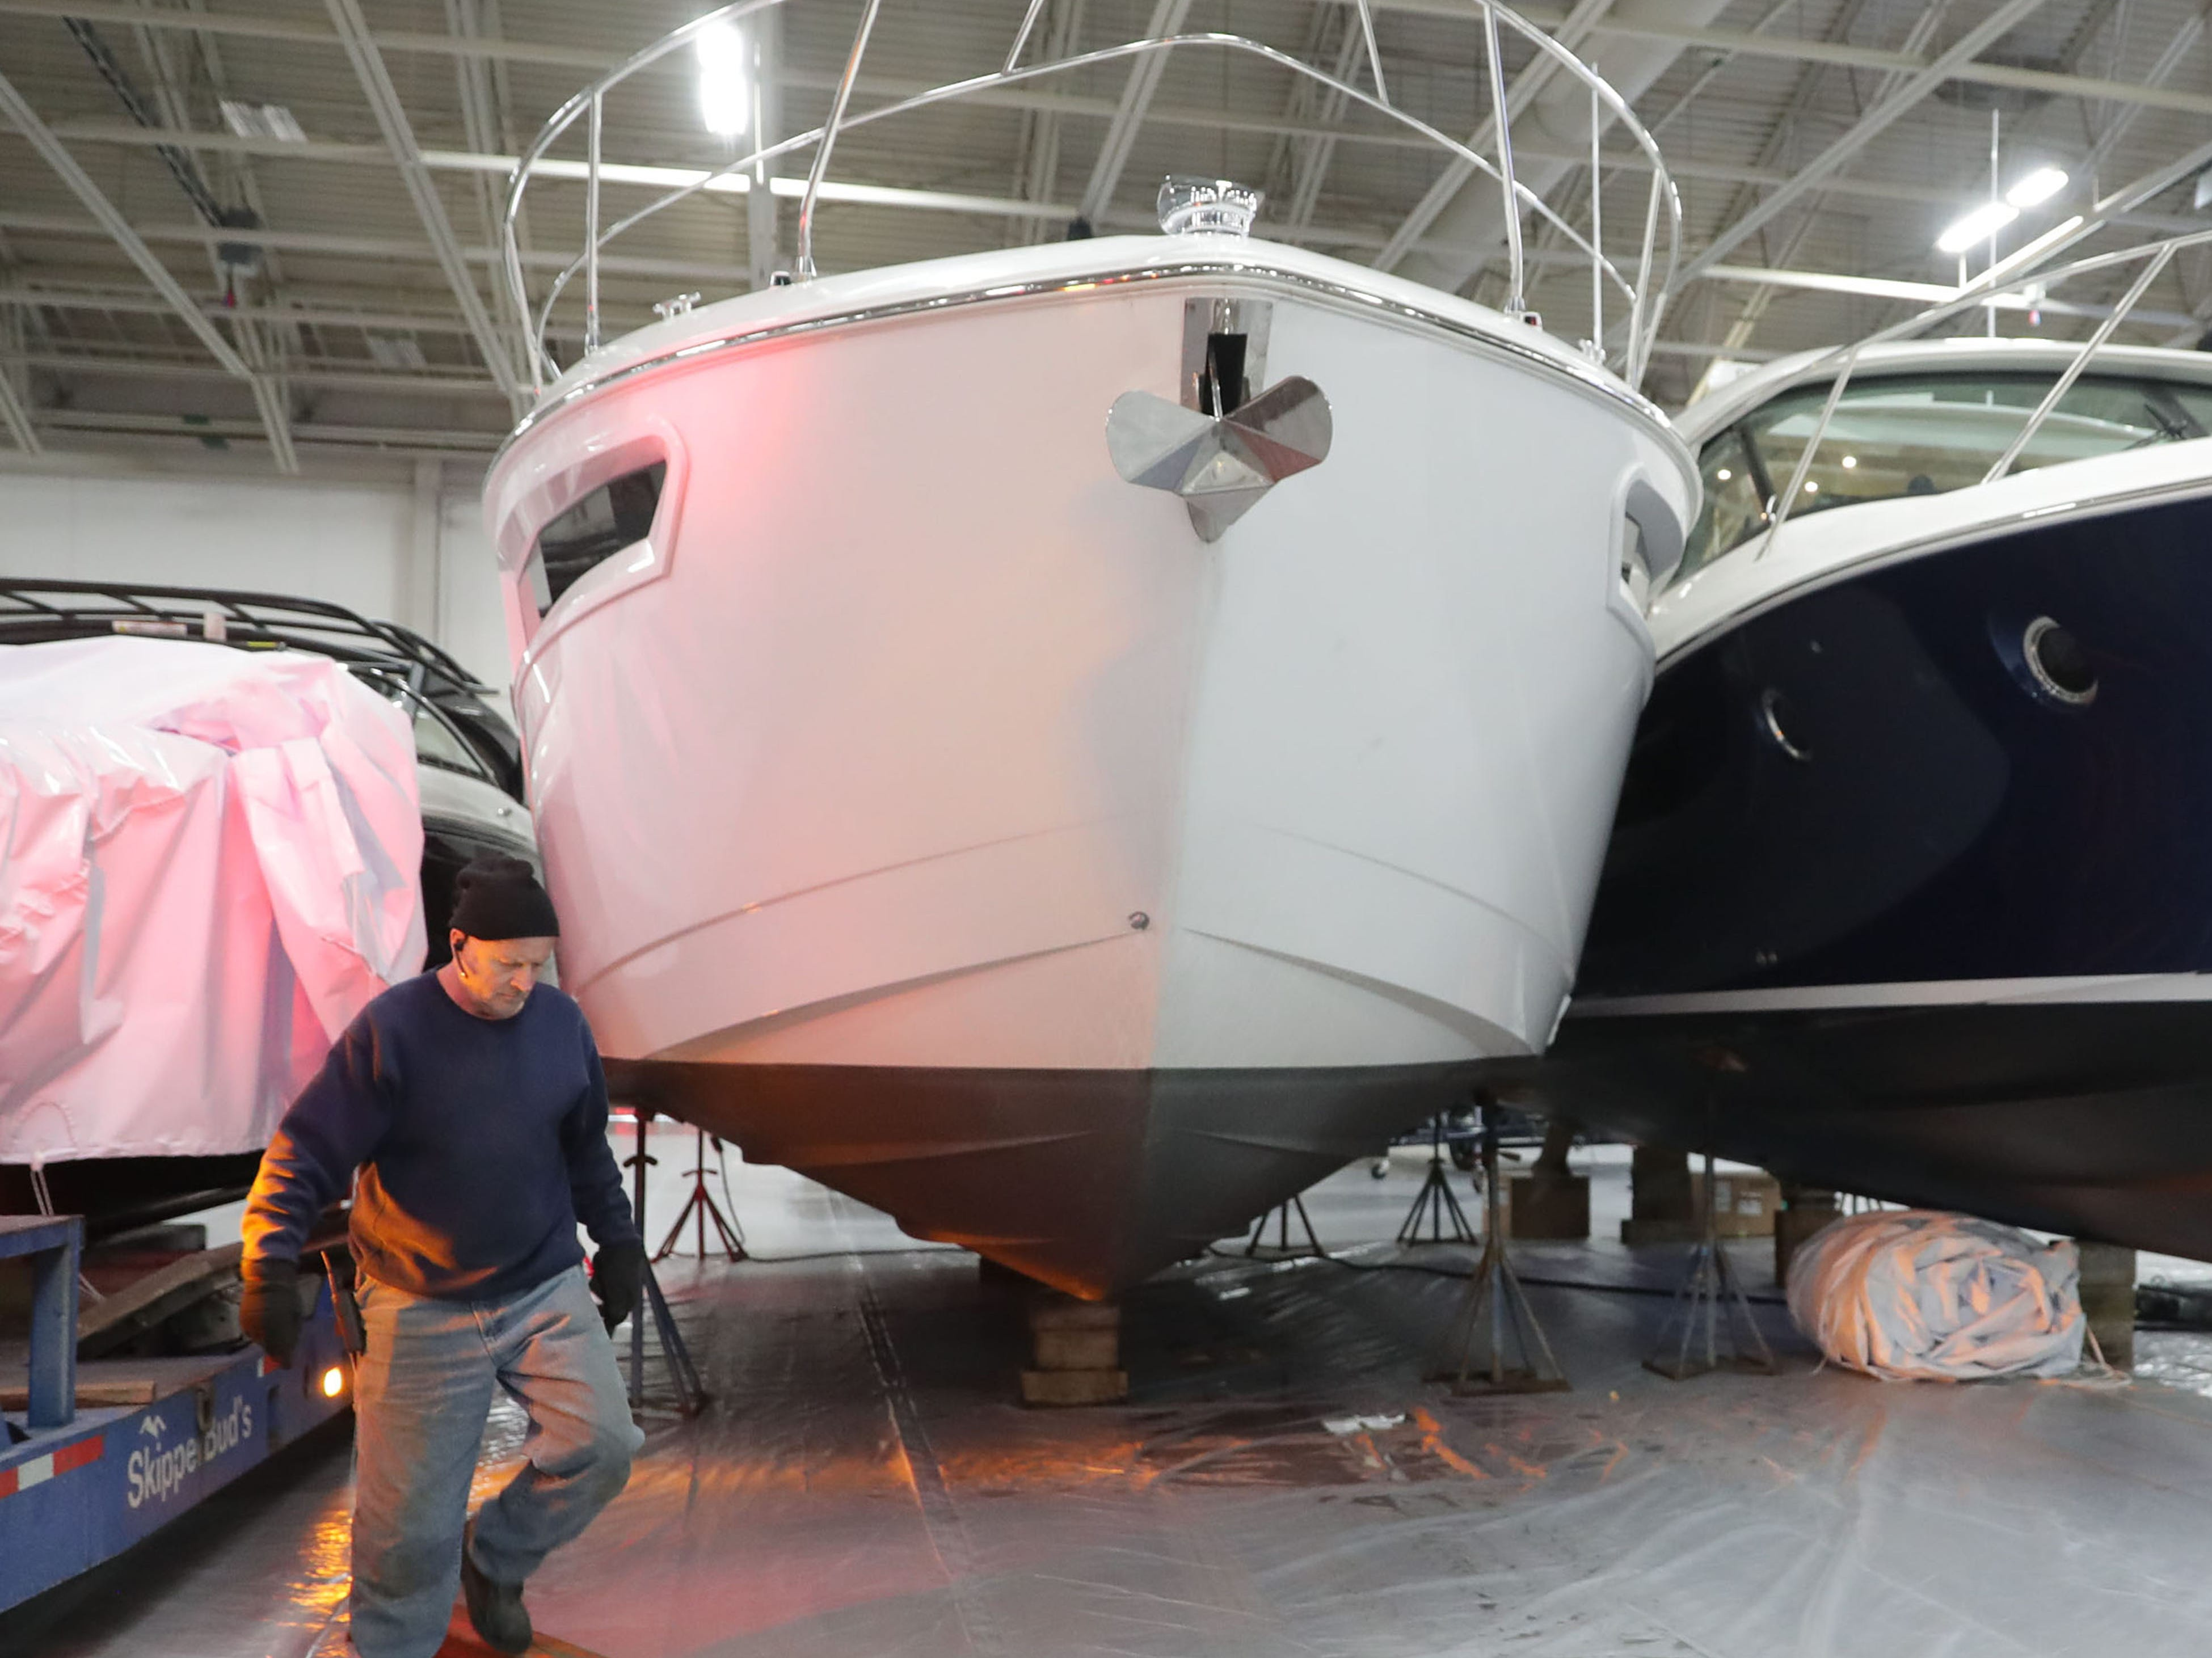 Mike McPherson with Skipper Buds, out of Pewaukee, works near this 2019 42-foot Cruisers Cantius yacht, with a price of $1,022,244.